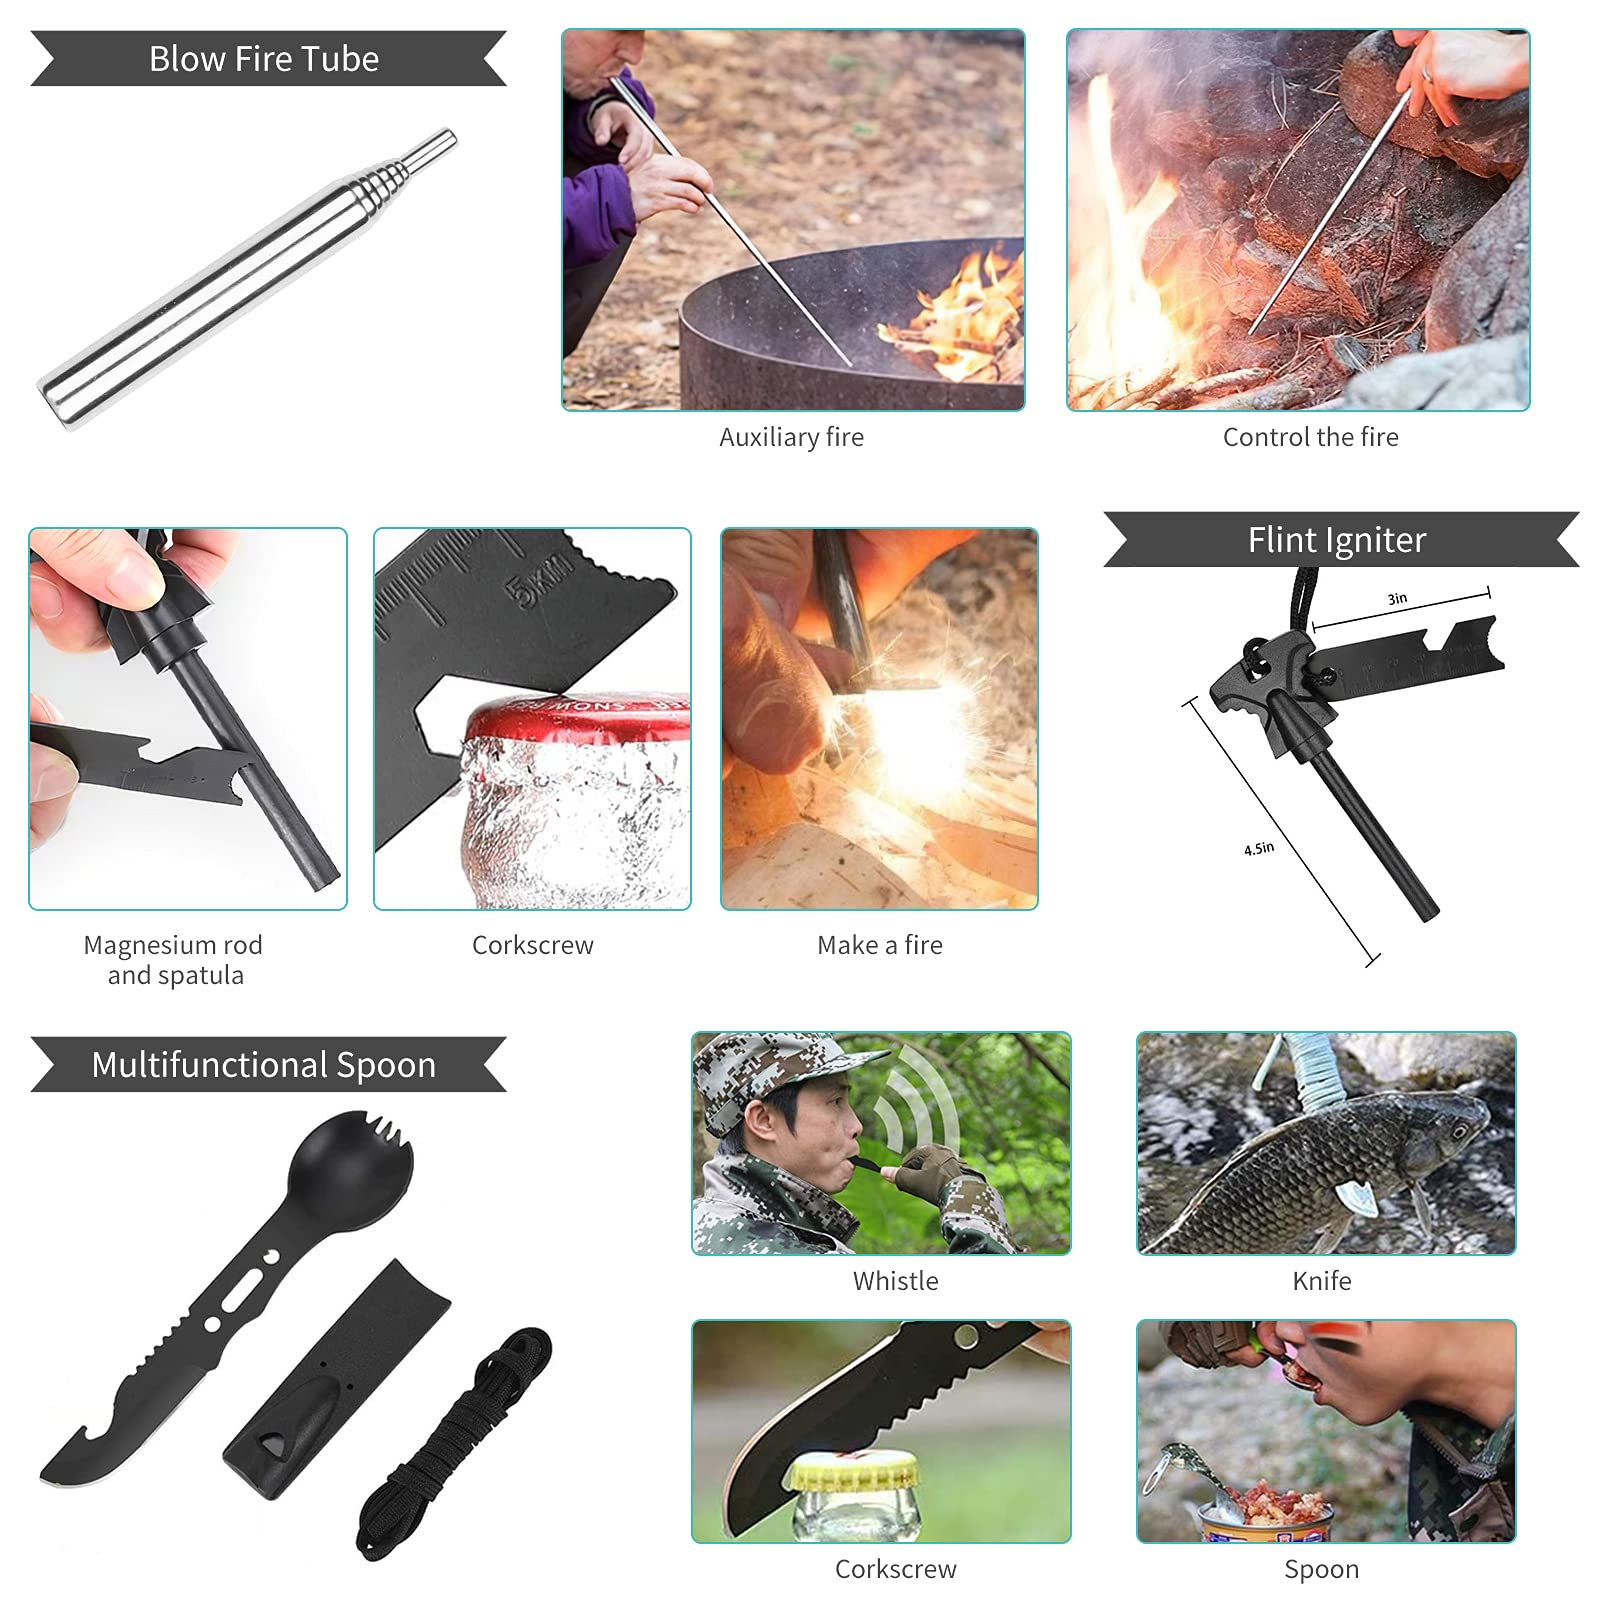 Survival Gear Equipment Outdoor Survival Kit, Cool Gadgets Gifts for Men Dad Teenage Boy, Christmas Stocking Stuffers 15 in 1 Camping Accessories, Gift Ideas for Field Hiking Adventure Hunting Lovers